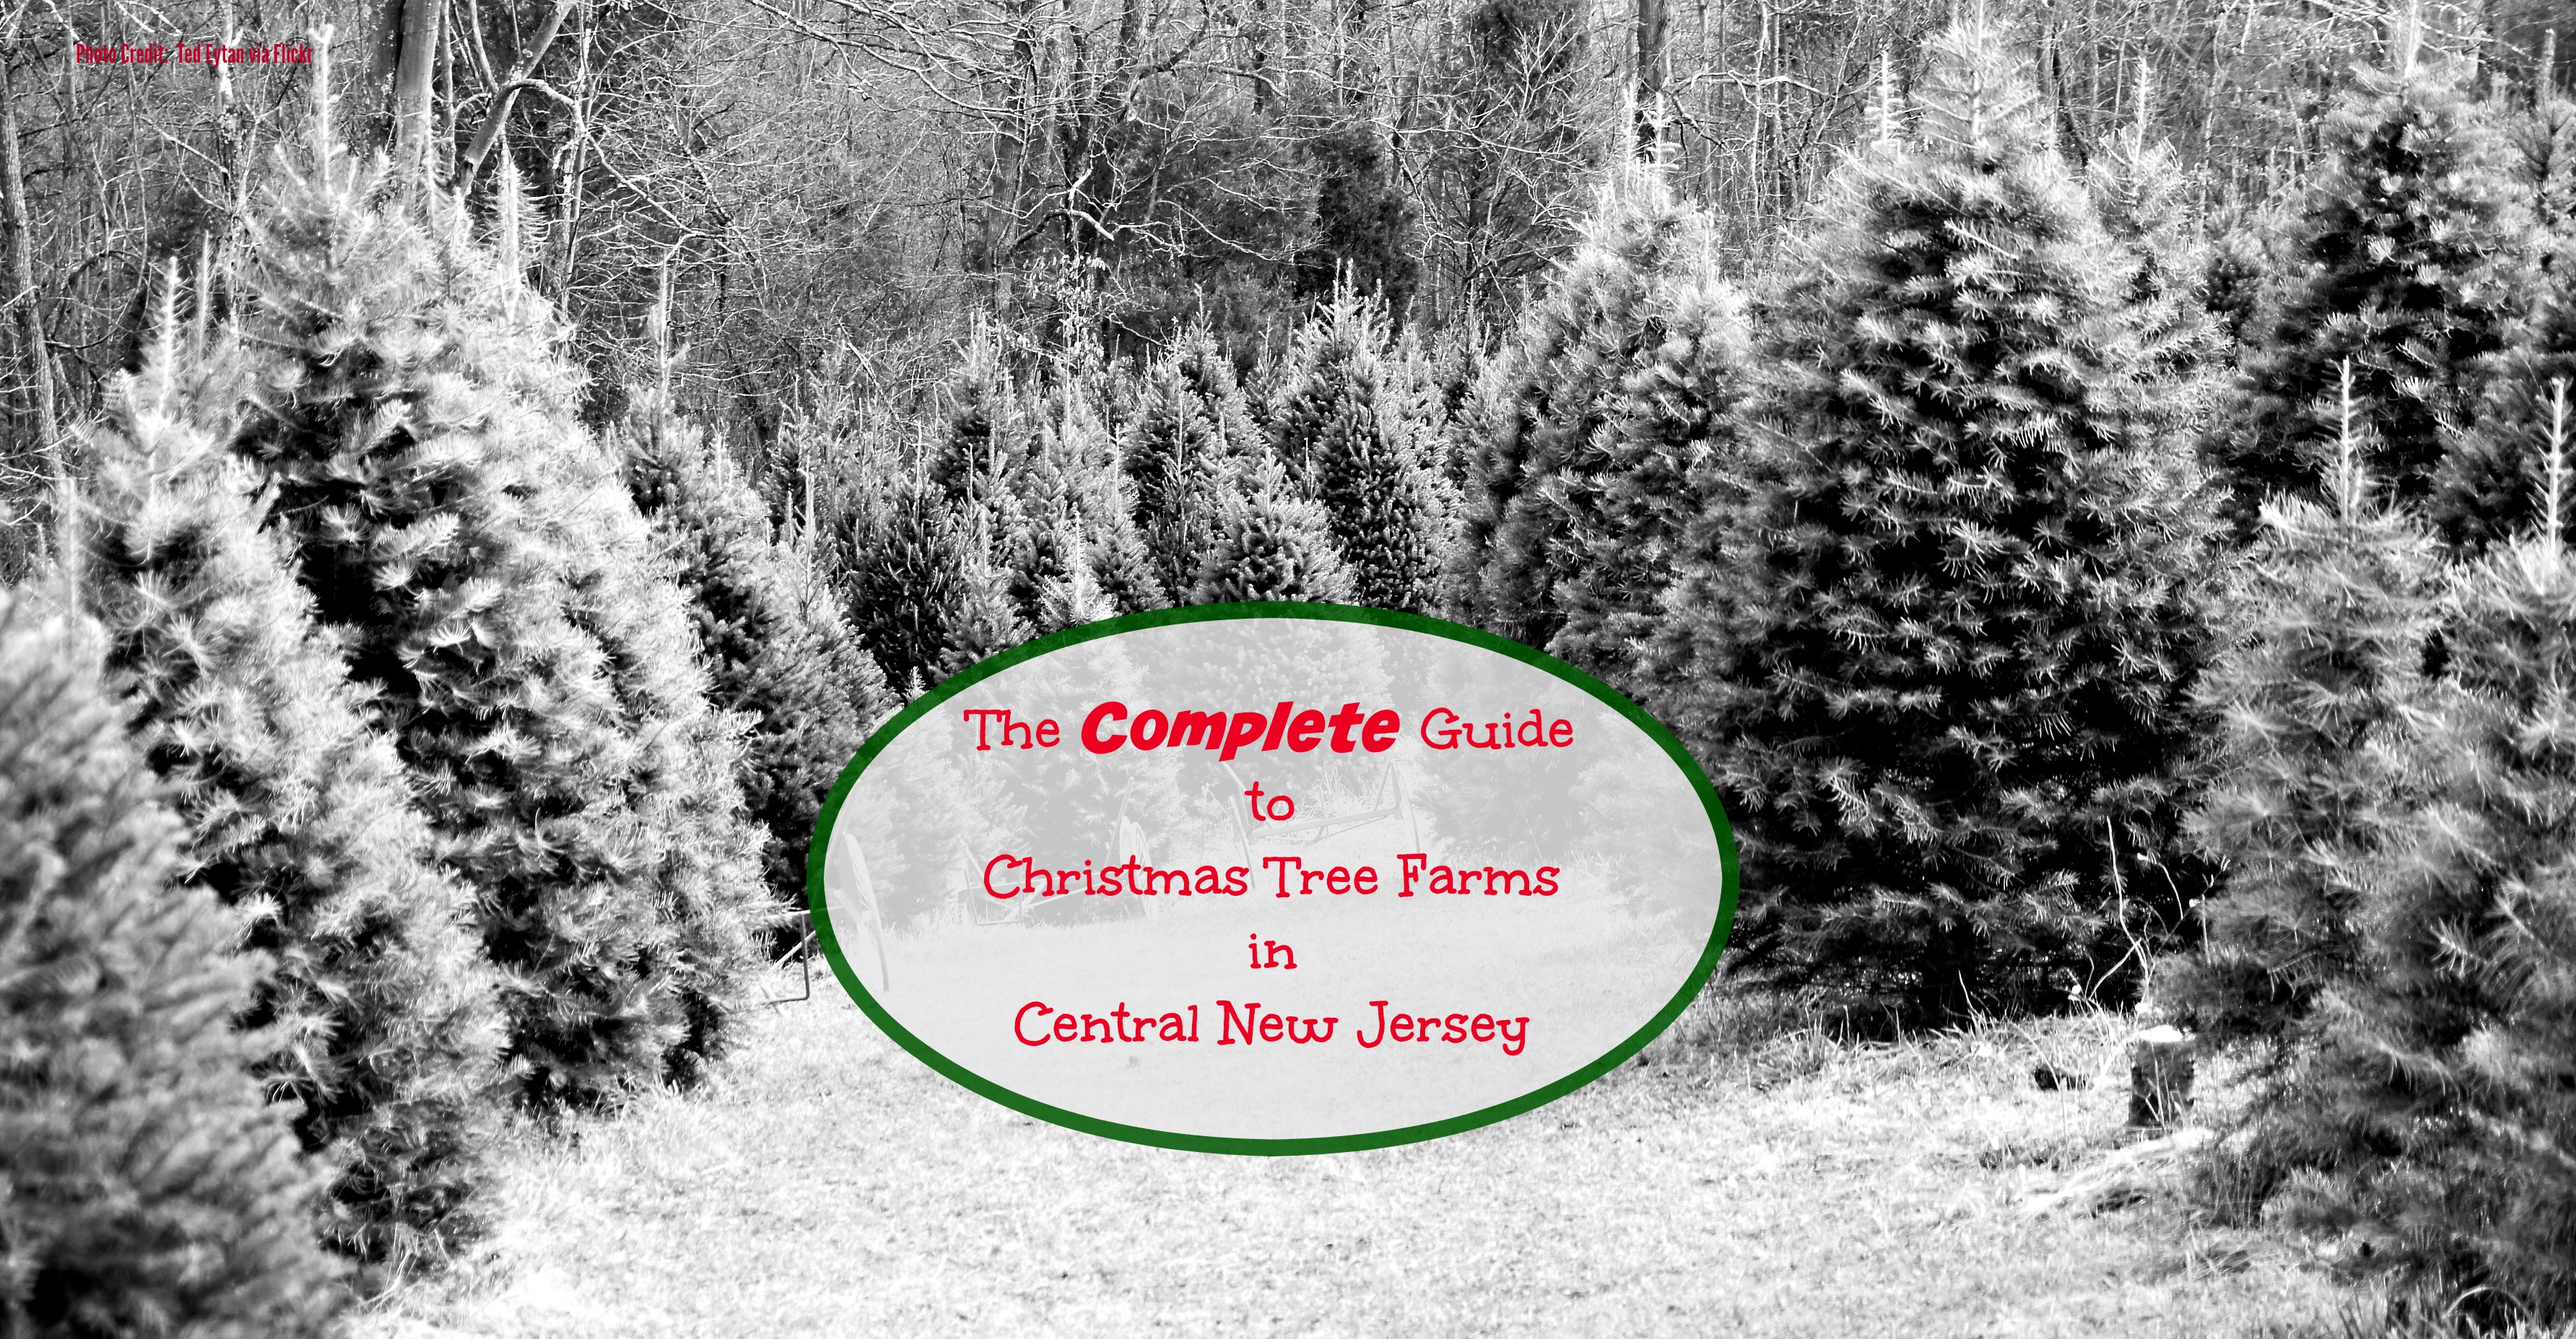 The Complete Guide to Christmas Tree Farms in Central Jersey ...